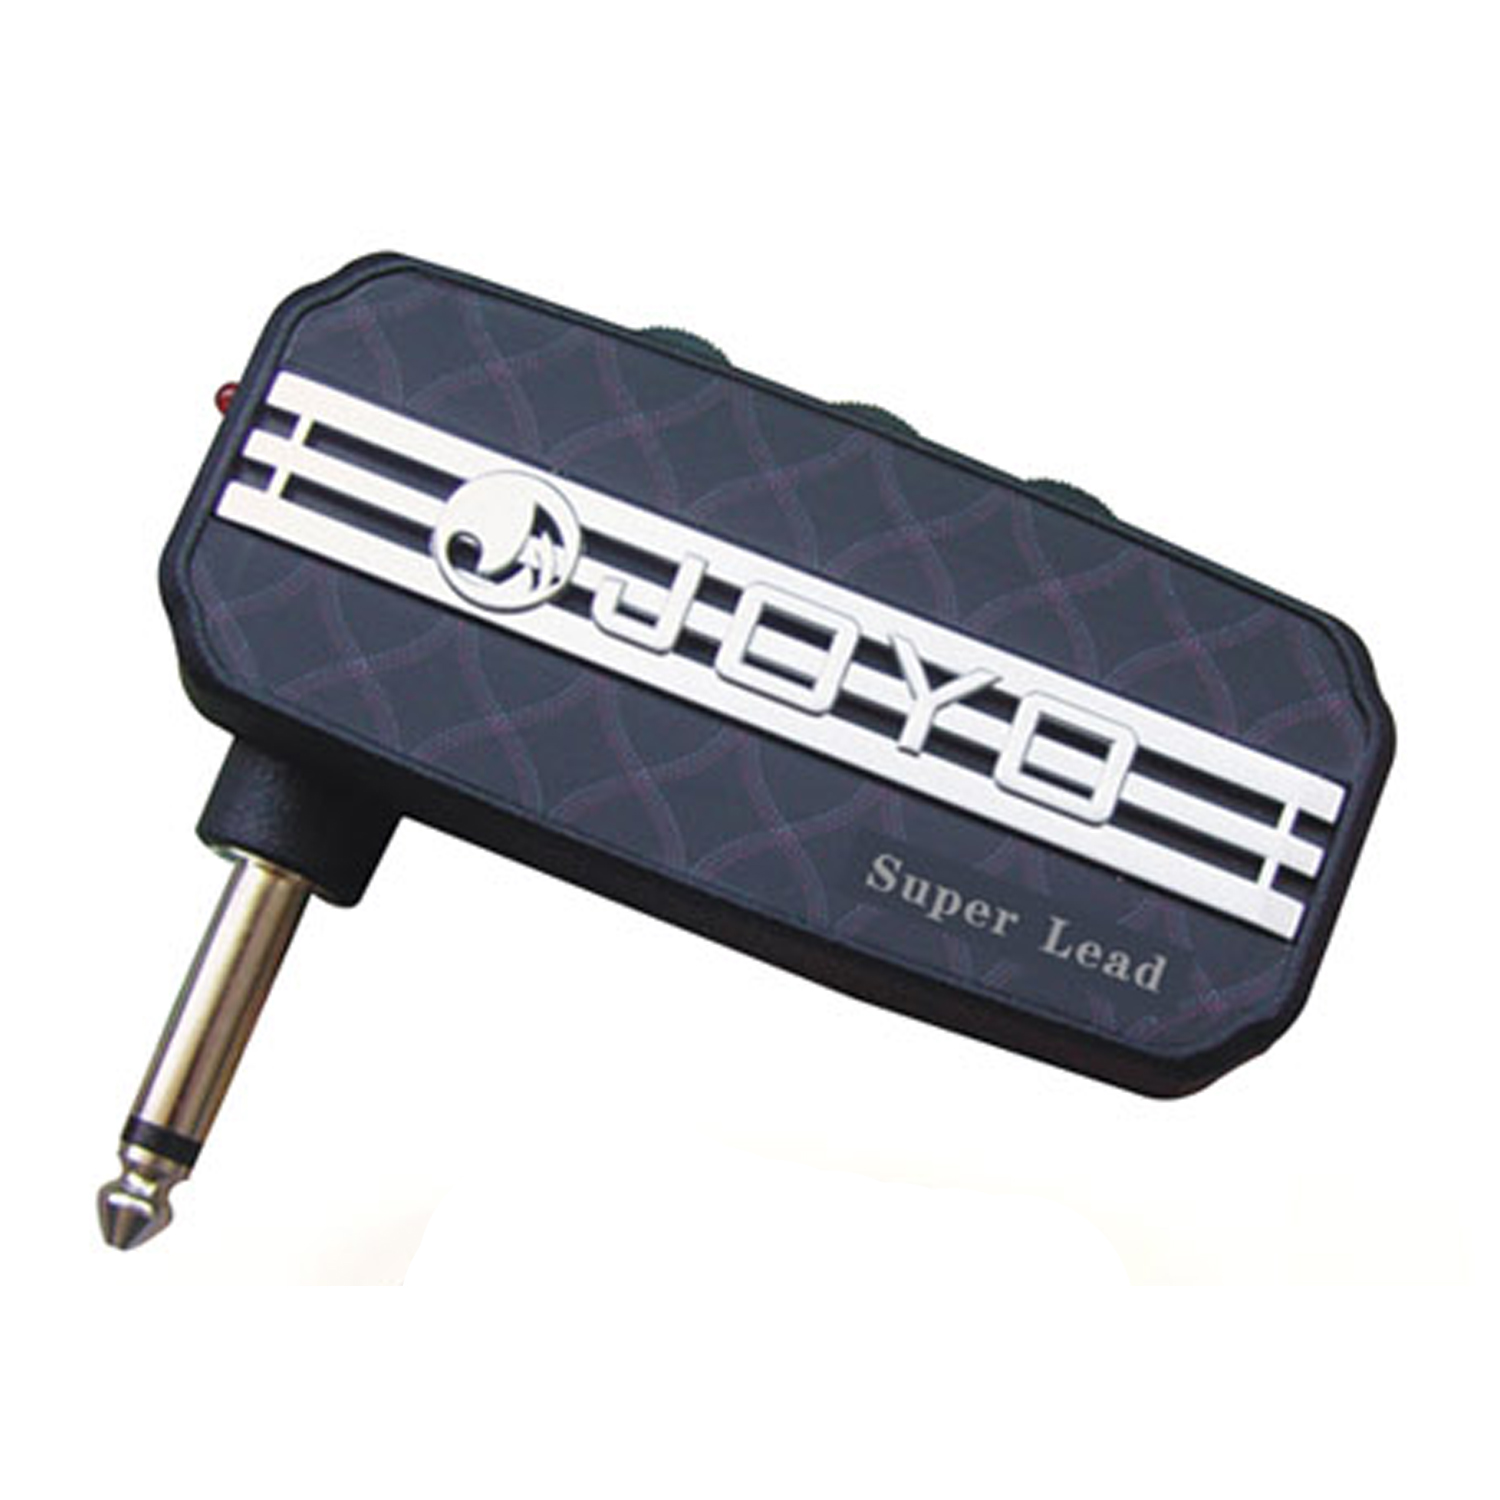 JOYO Super Lead Guitar Effect Mini Guitar Pocket Amplifier with Headphone Output JA-03 joyo ja 03 mini guitar amplifier with metal sound effect